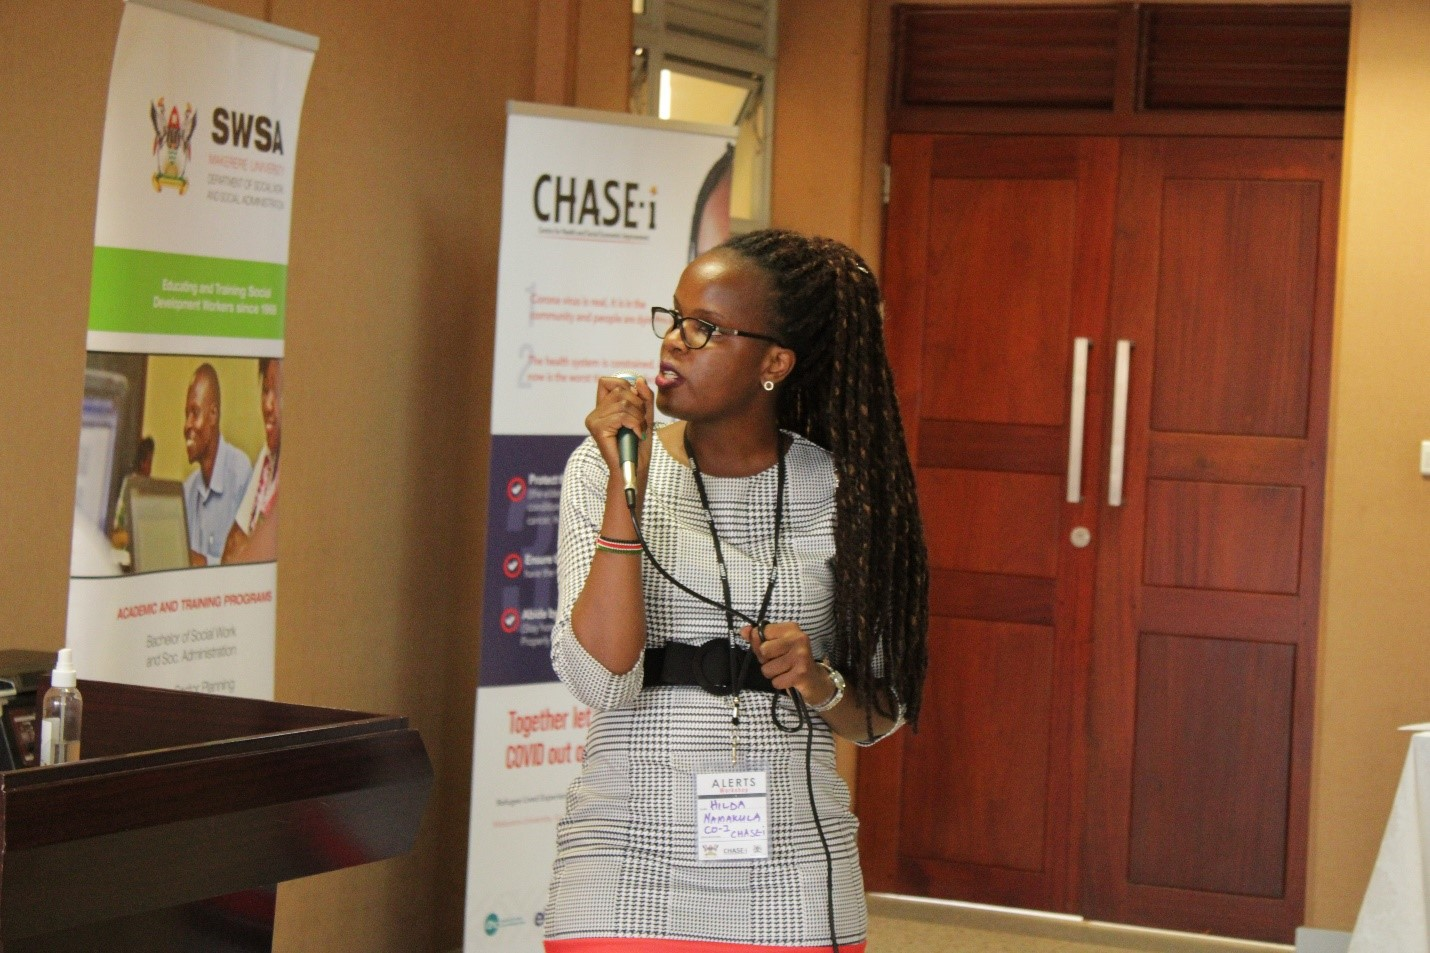 Hilda Namakula a Co-Investigator of the ALERTs study presenting the Key Findings at the ALERTs Validation and Co-Design Event